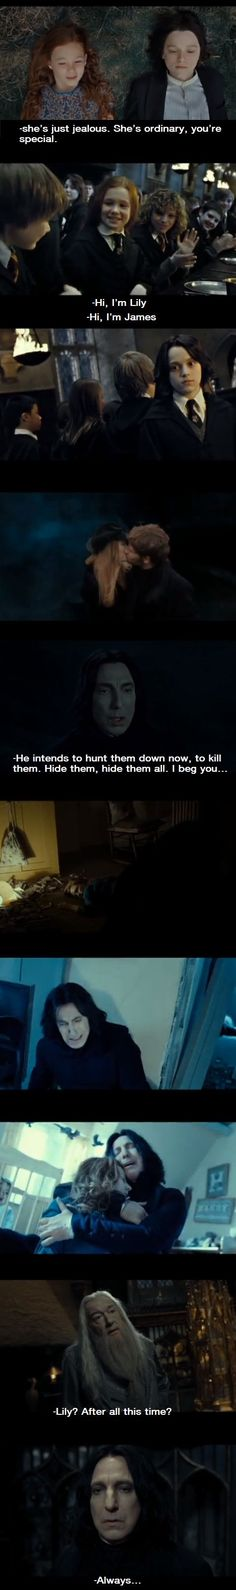 Snapes love for Lily was endless. Never in my Harry Potter days have I cried so much when I saw Snapes memories. - Imgur